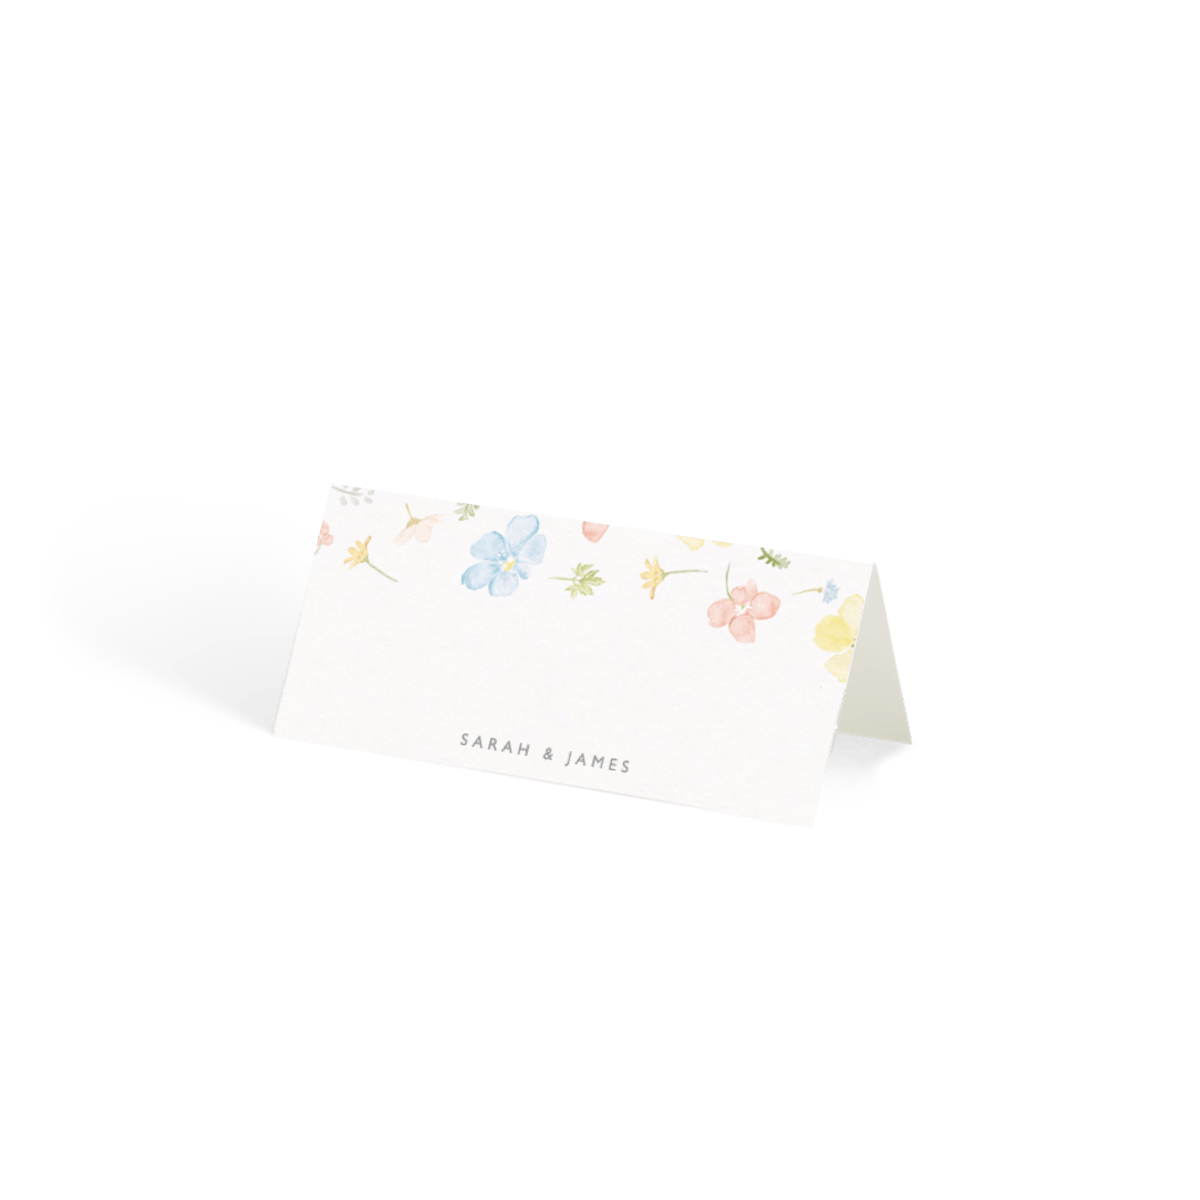 Https%3a%2f%2fwww.papier.com%2fproduct image%2f16237%2f8%2fpetite floral 4293 front 1484589808.png?ixlib=rb 1.1